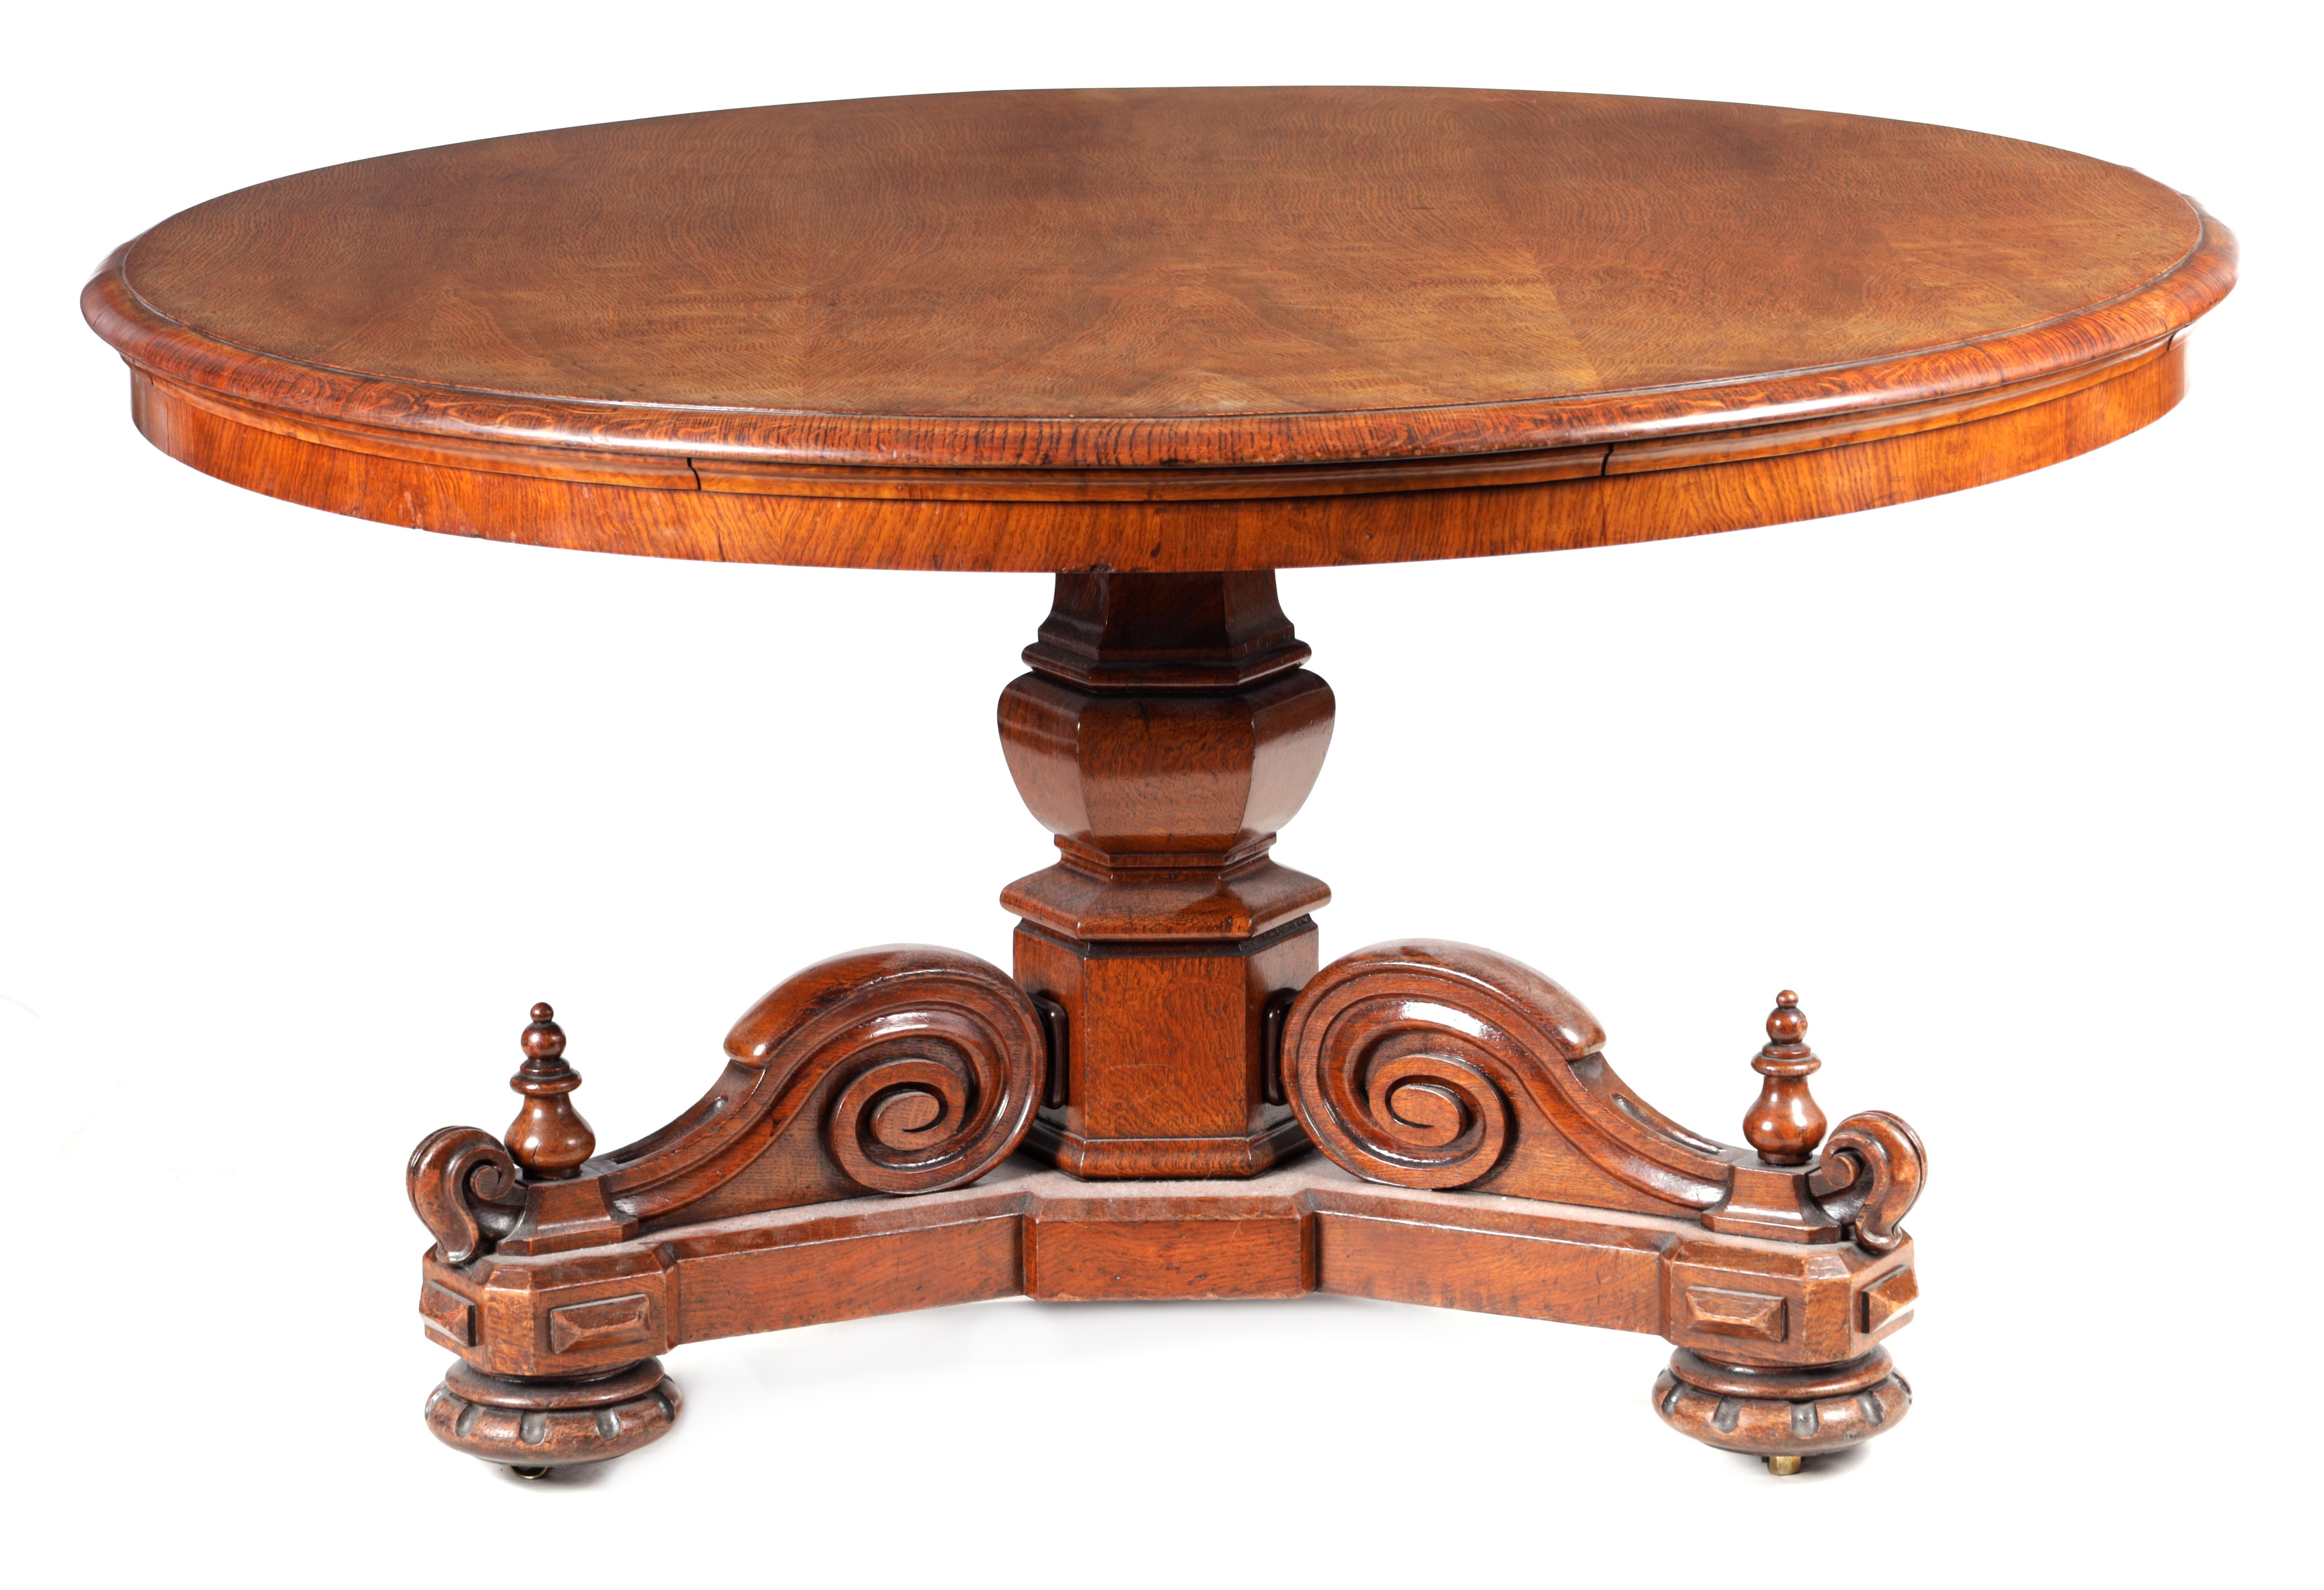 A 19TH CENTURY POLLARD OAK CENTRE TABLE with circular moulded edge above a hexagonal base with